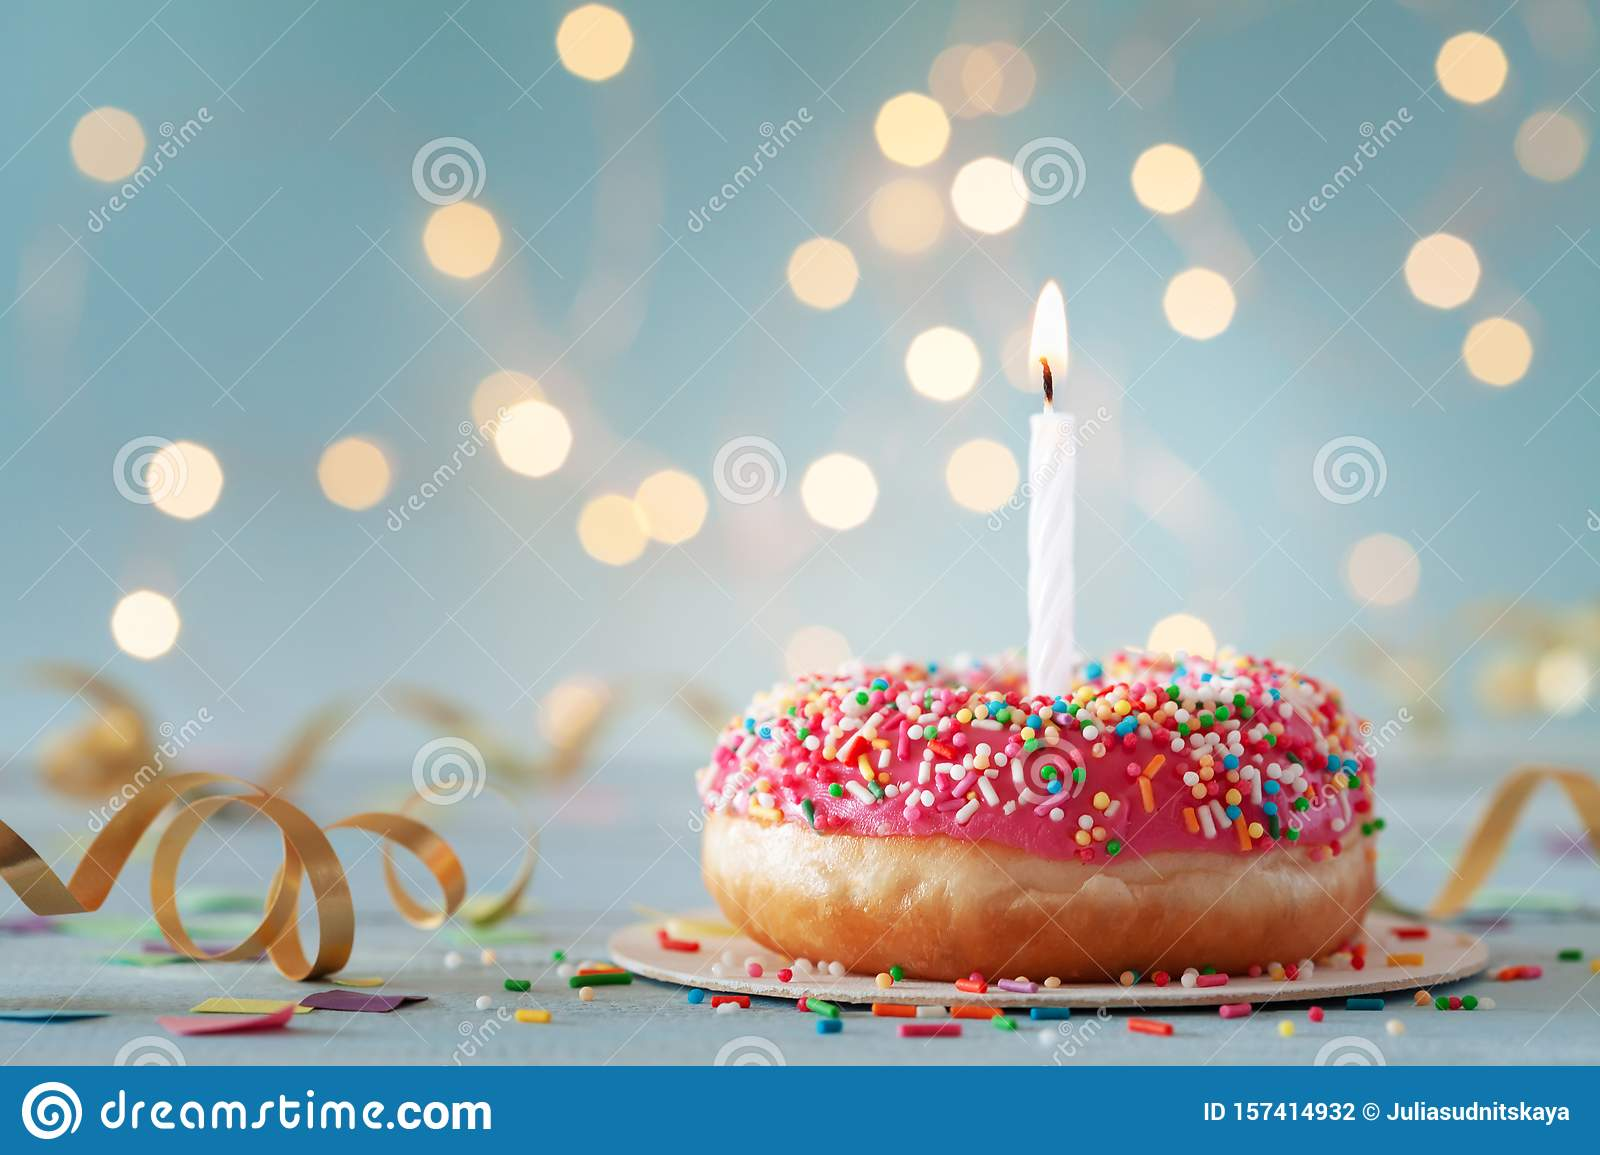 Pink donut and one burning candle against bokeh light background. Happy birthday concept